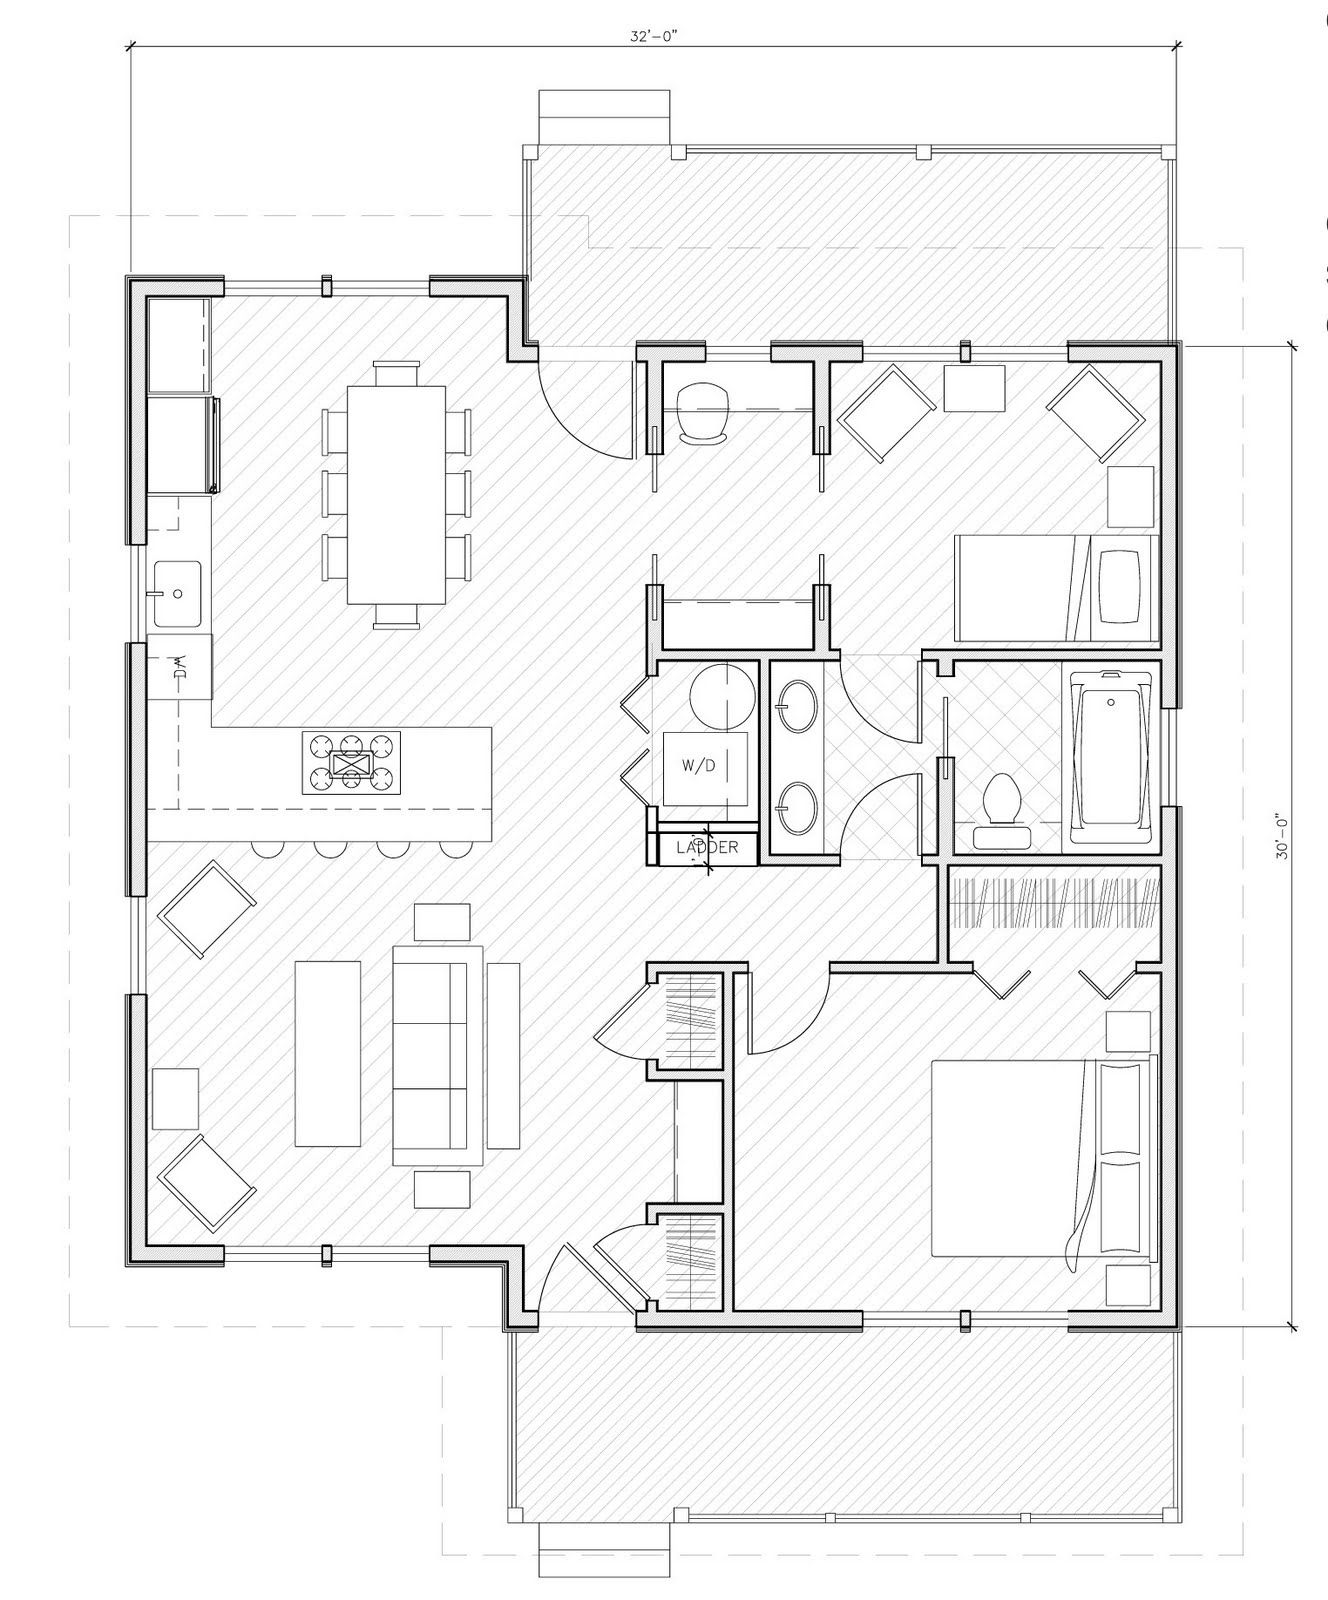 House plan under 1000 sq ft